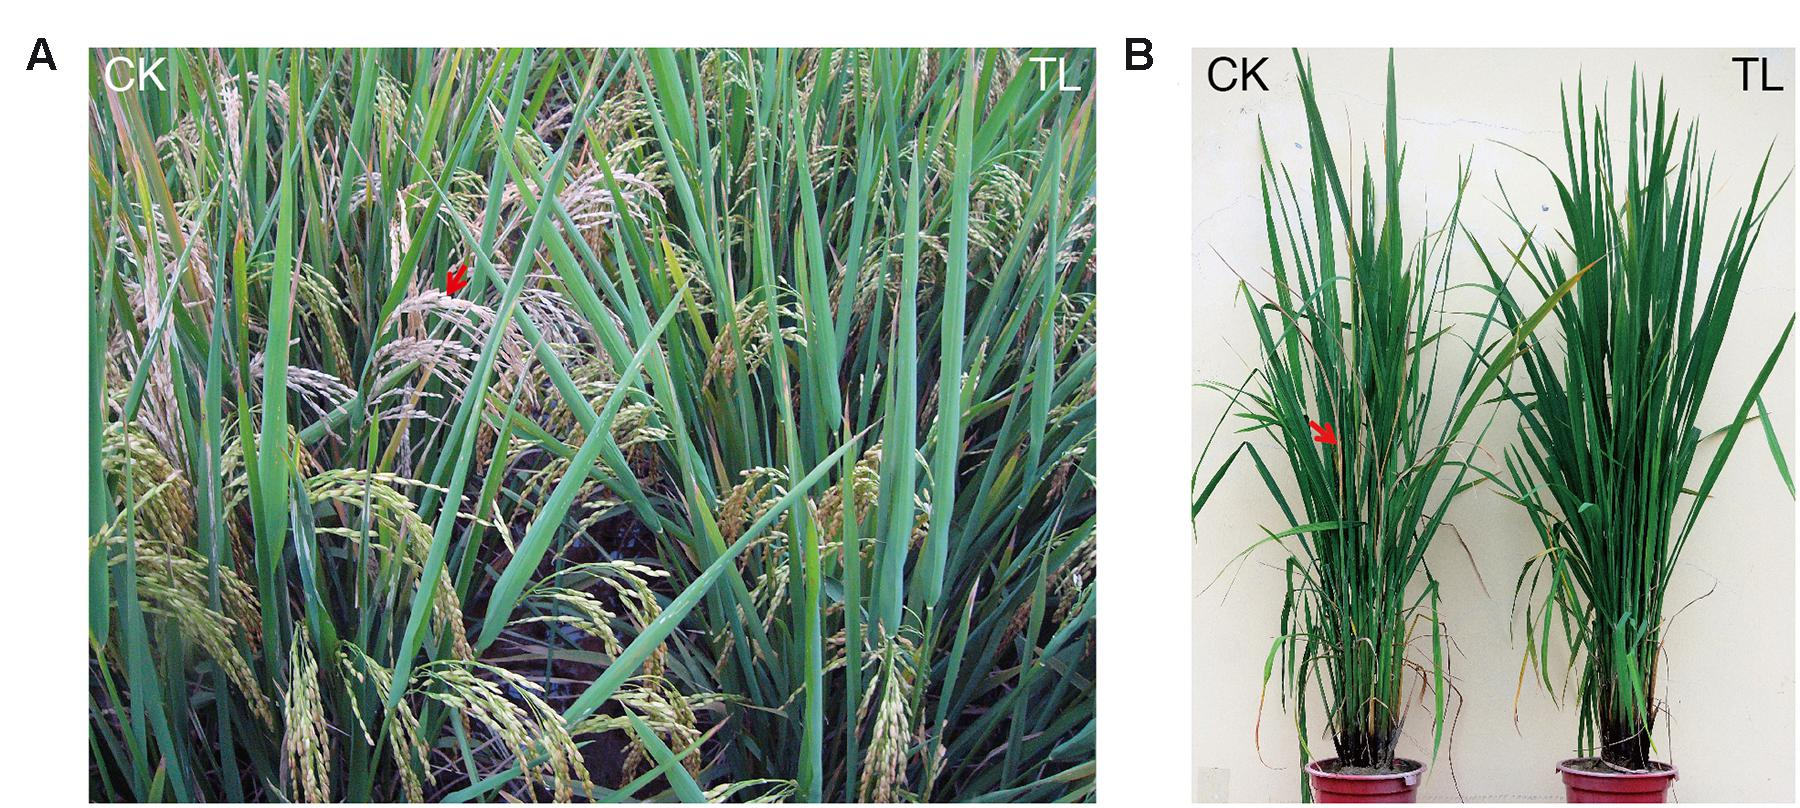 transgenic rice plants that express insect resistance Most of the existing insect-resistant plants express a single resistance gene placed under the control of a constitutive promoter, and management practices were first adopted in the us for the deployment of such b thuringiensis toxin-expressing plants.